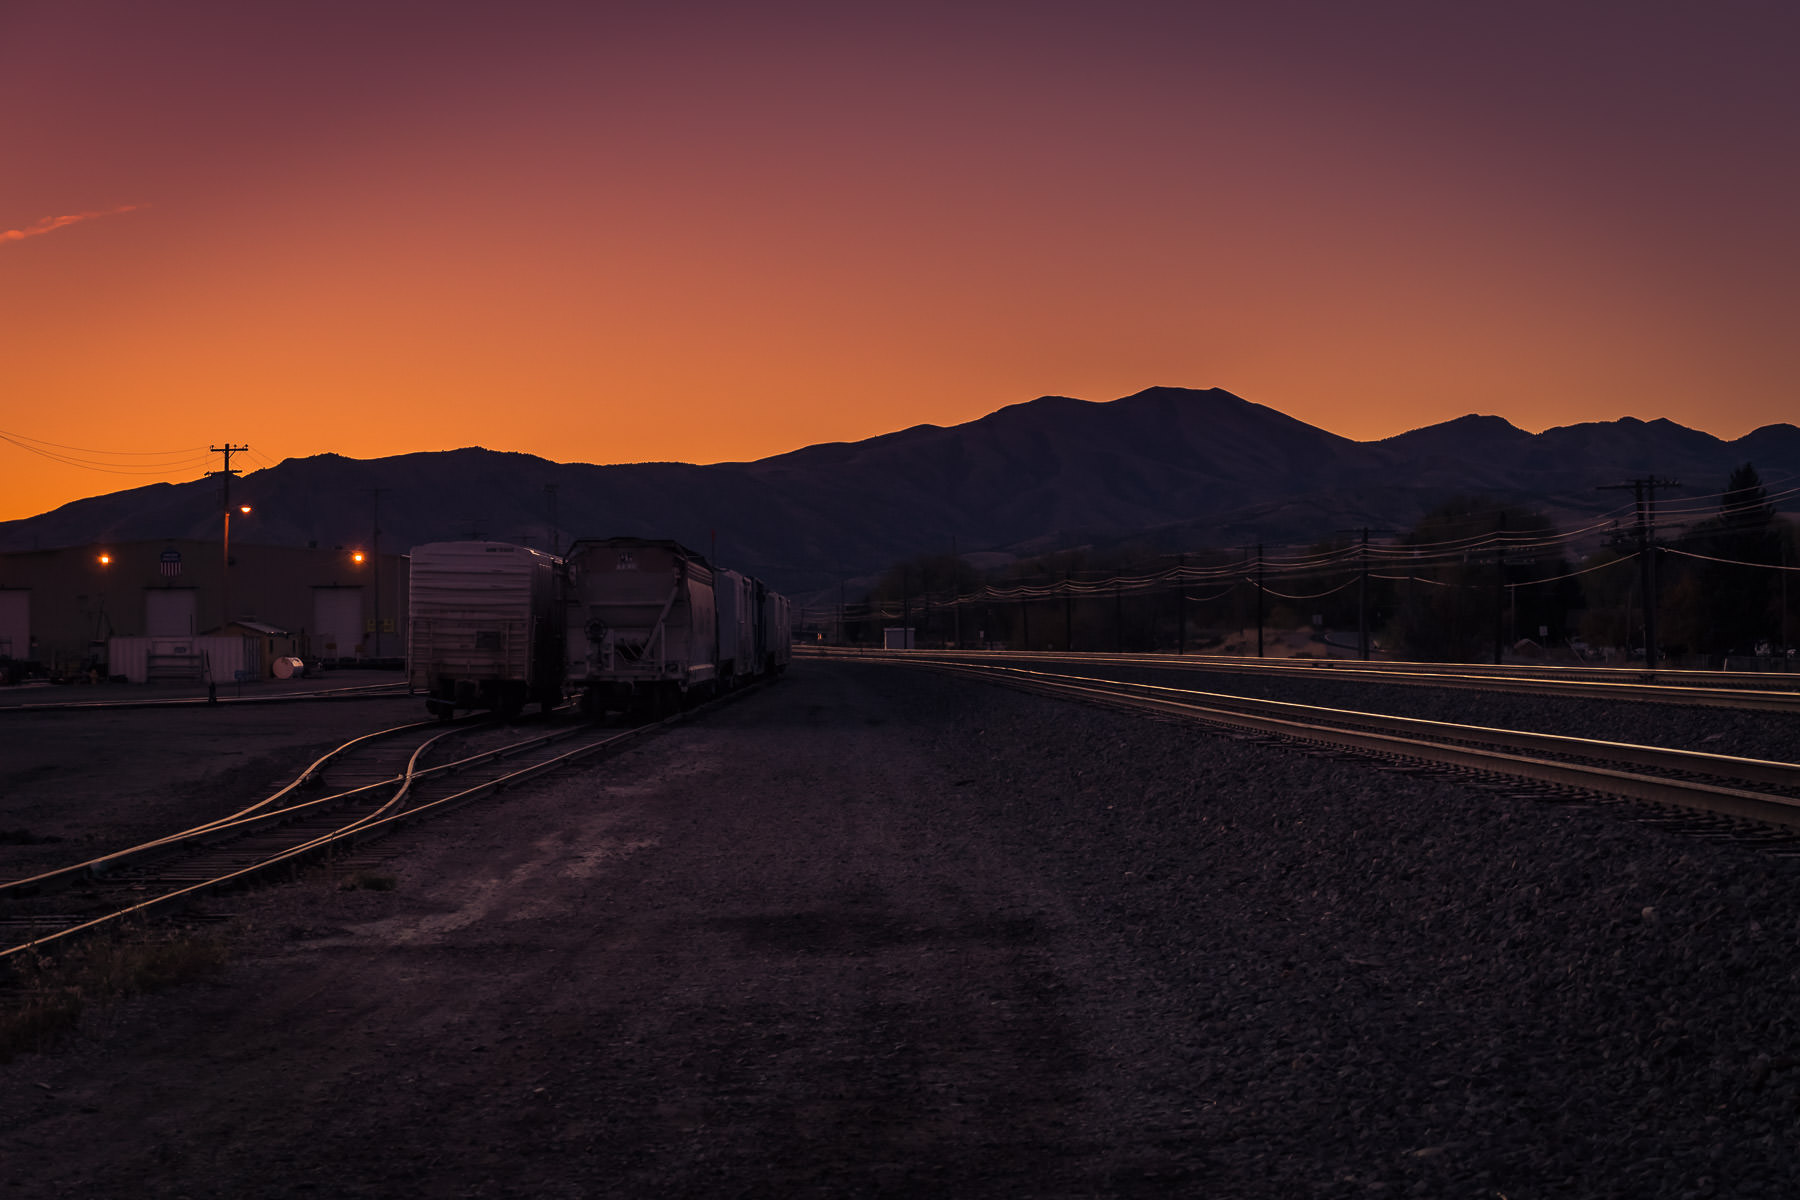 The sun rises beyond the mountains near a rail yard on the outskirts of Pocatello, Idaho.